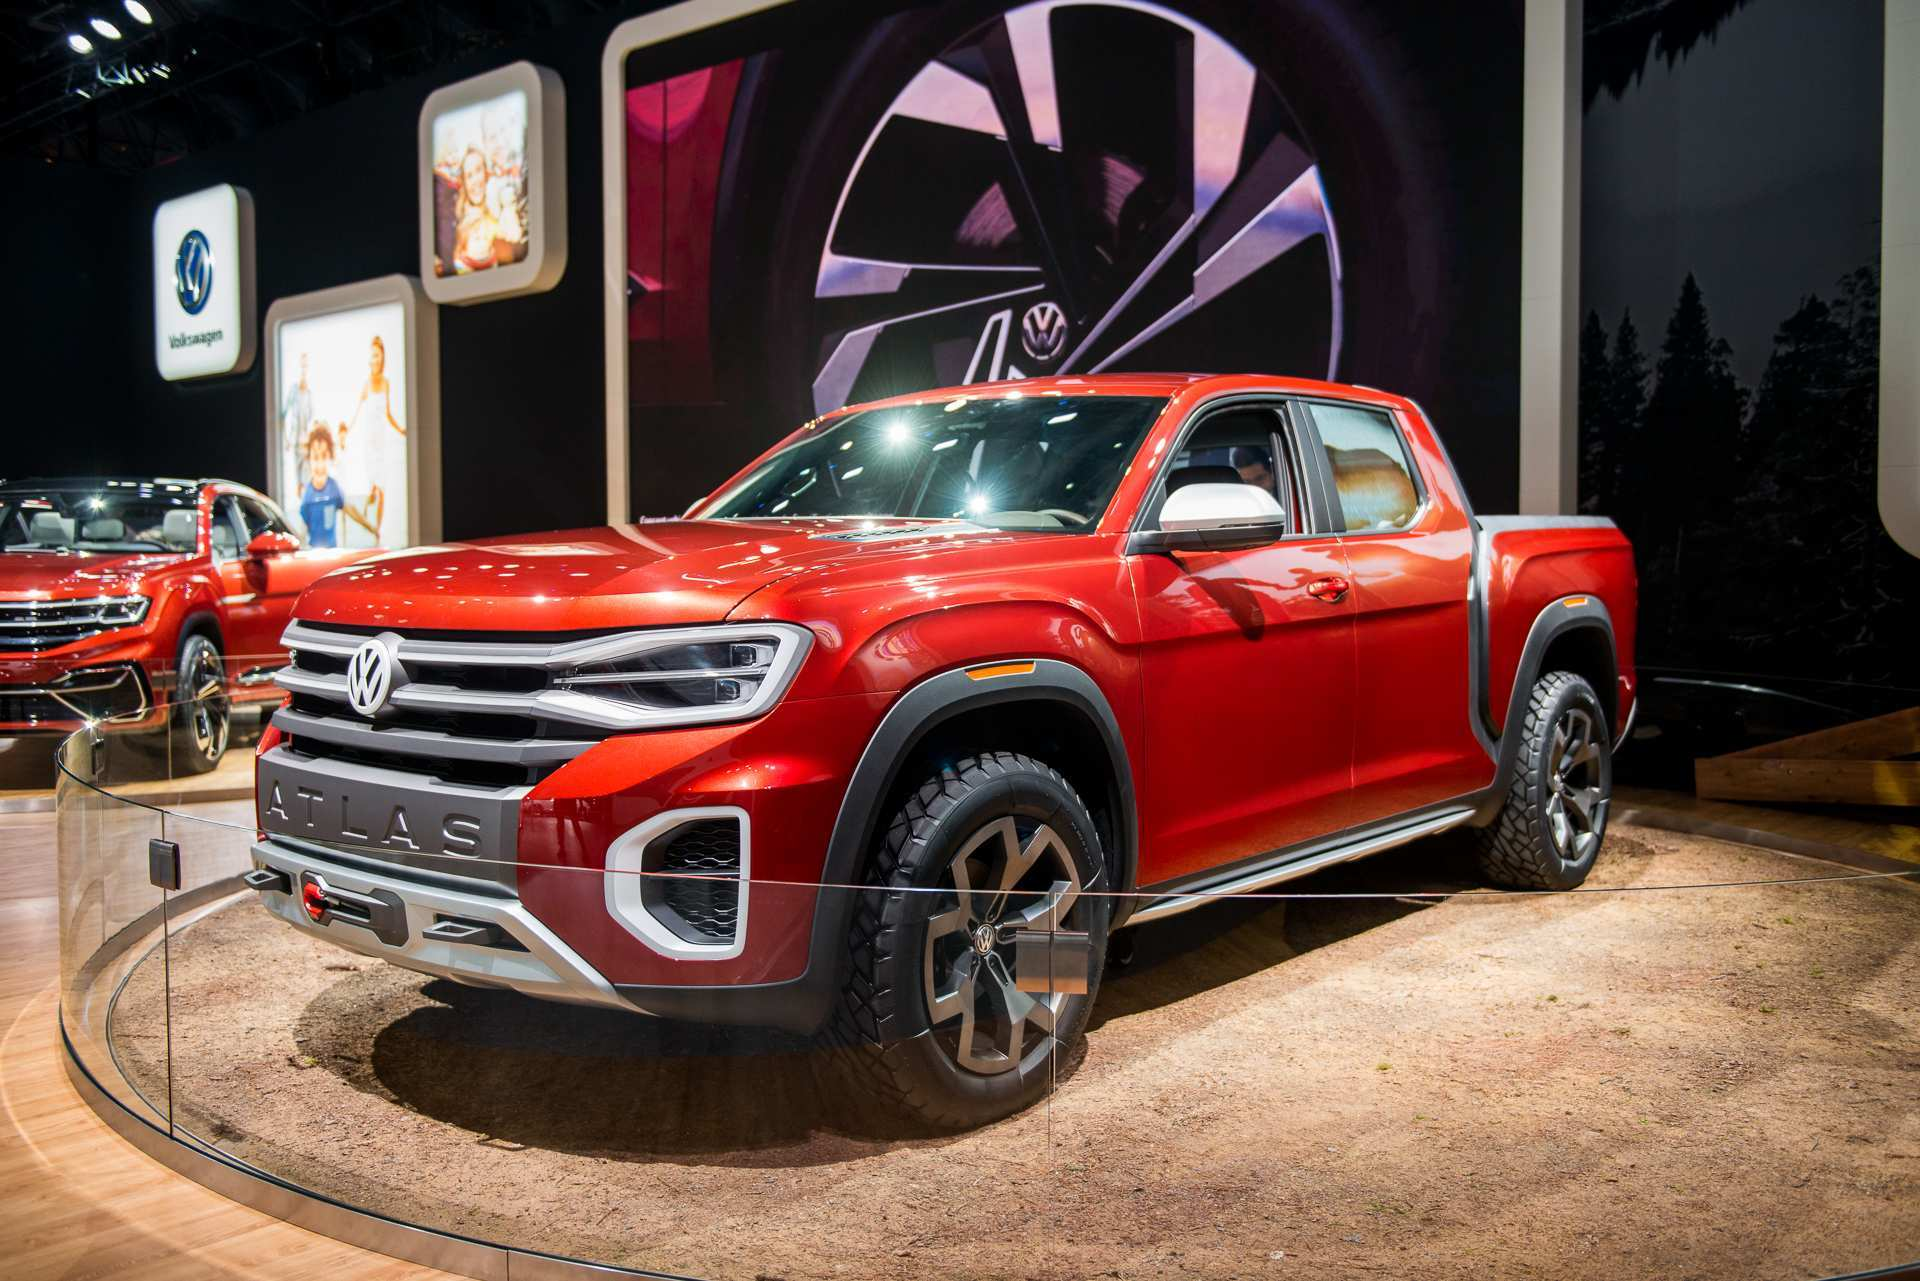 36 All New Volkswagen Truck 2020 Reviews for Volkswagen Truck 2020